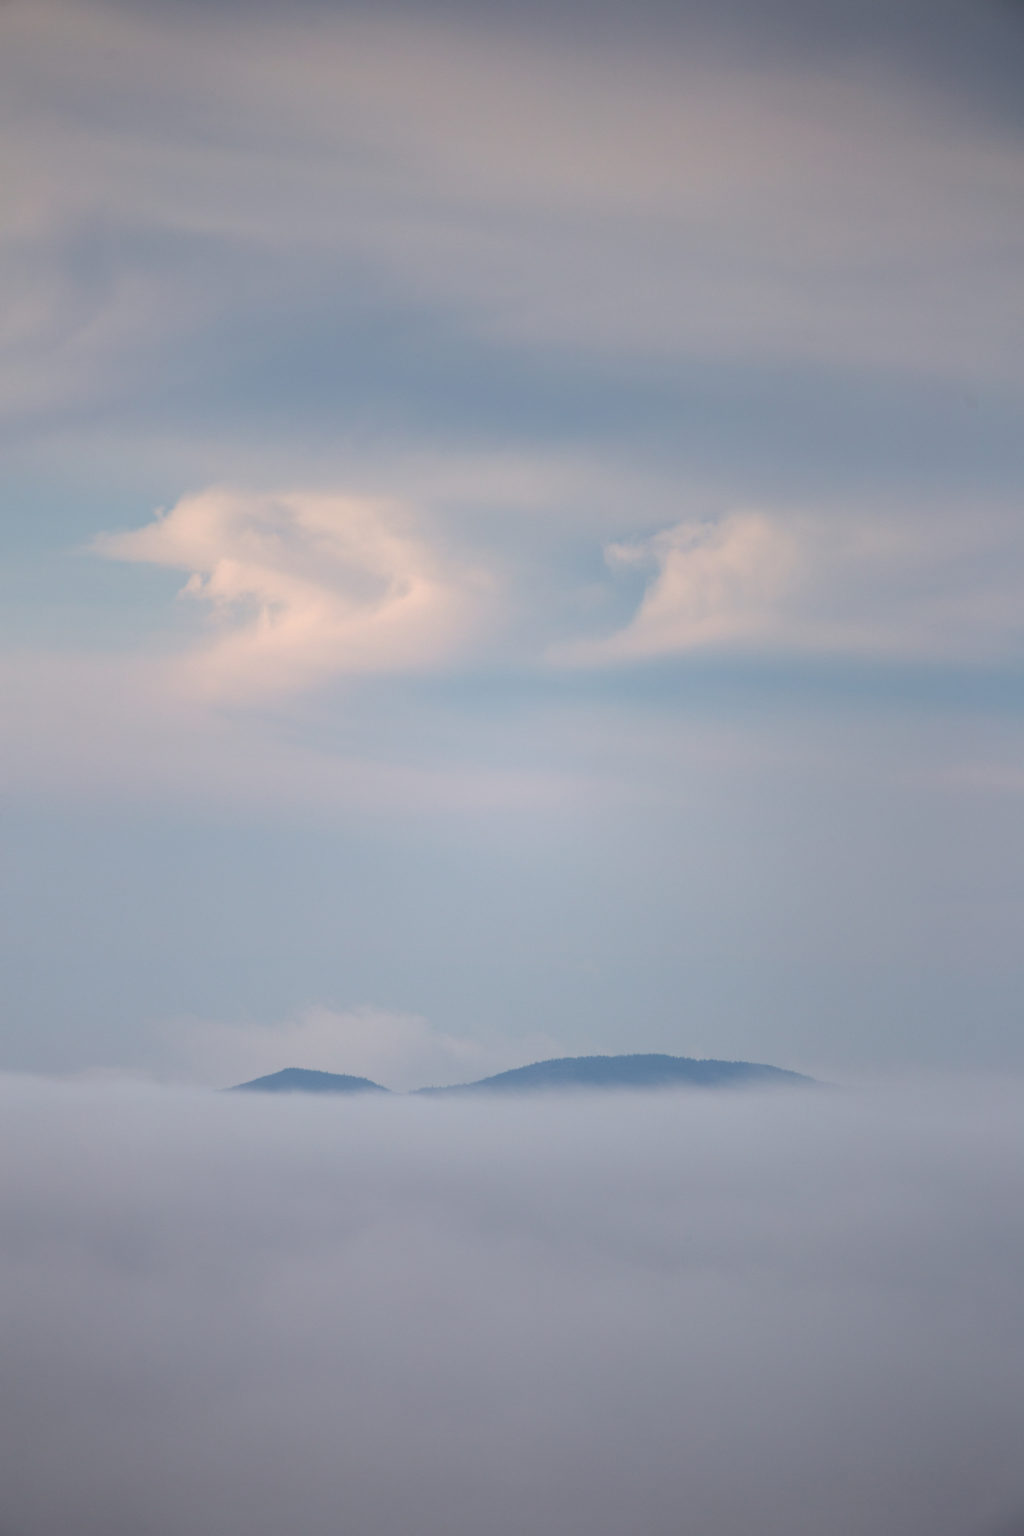 Mountaintop Peeking Over Thick Cloud Cover